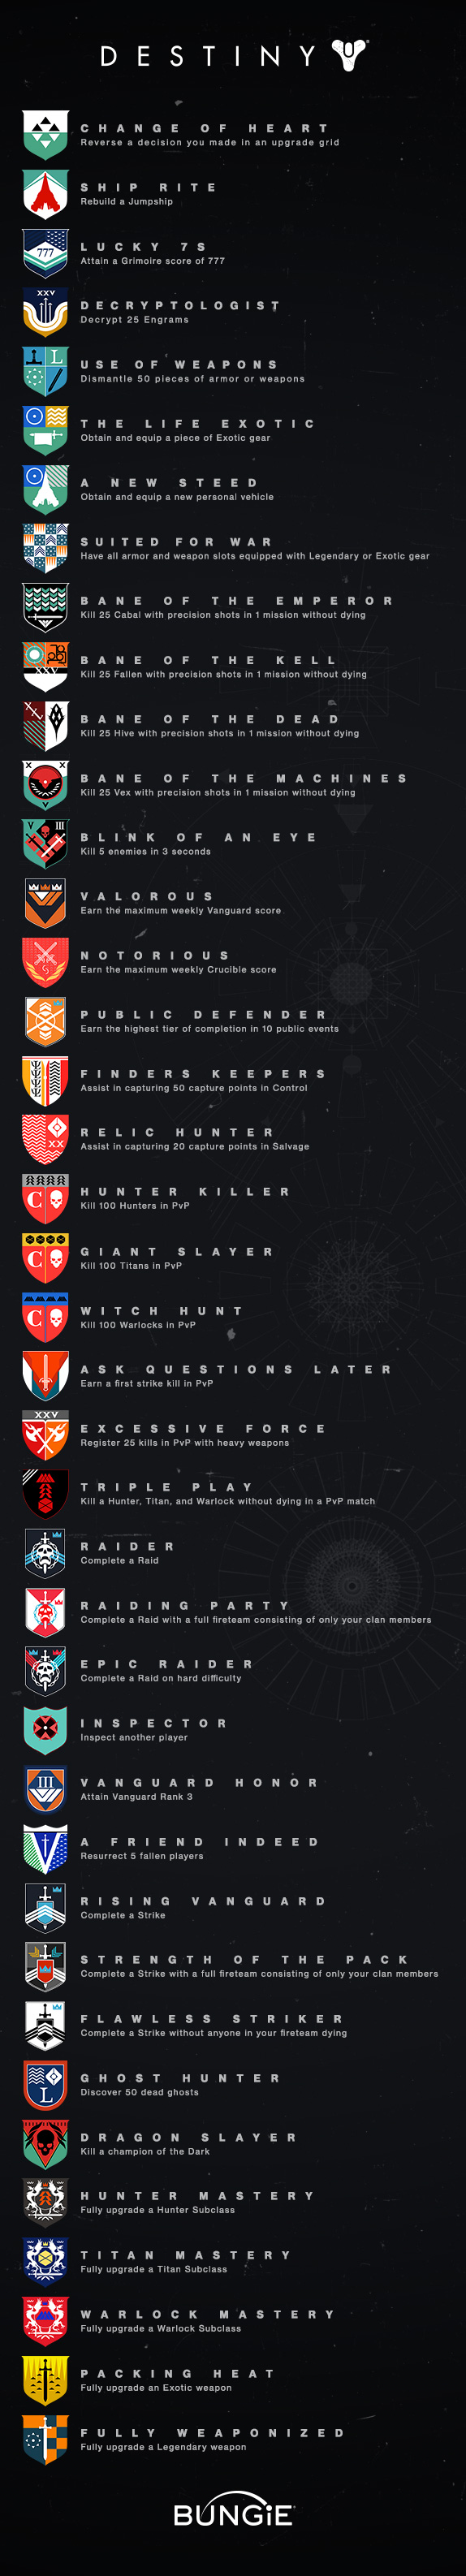 become legend - Destiny Rating, Trophies, Beta Details and More